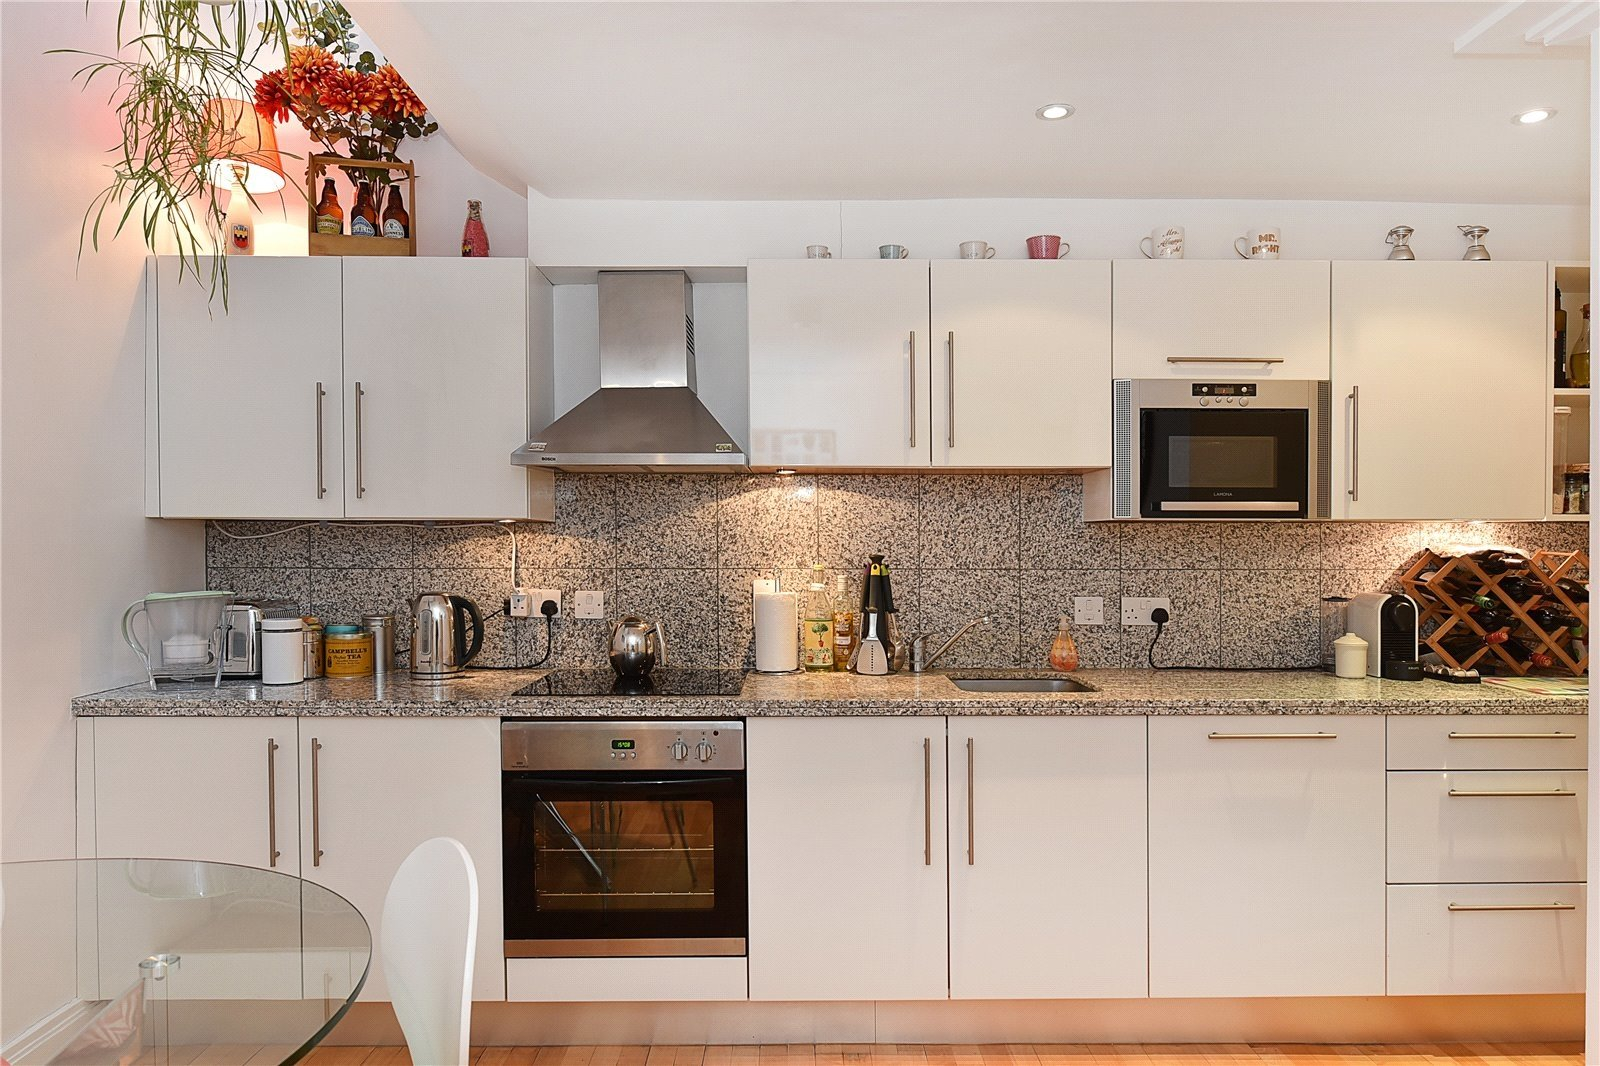 Fine By Photo Congress 3 Bed House To Rent In North London Download Free Architecture Designs Embacsunscenecom